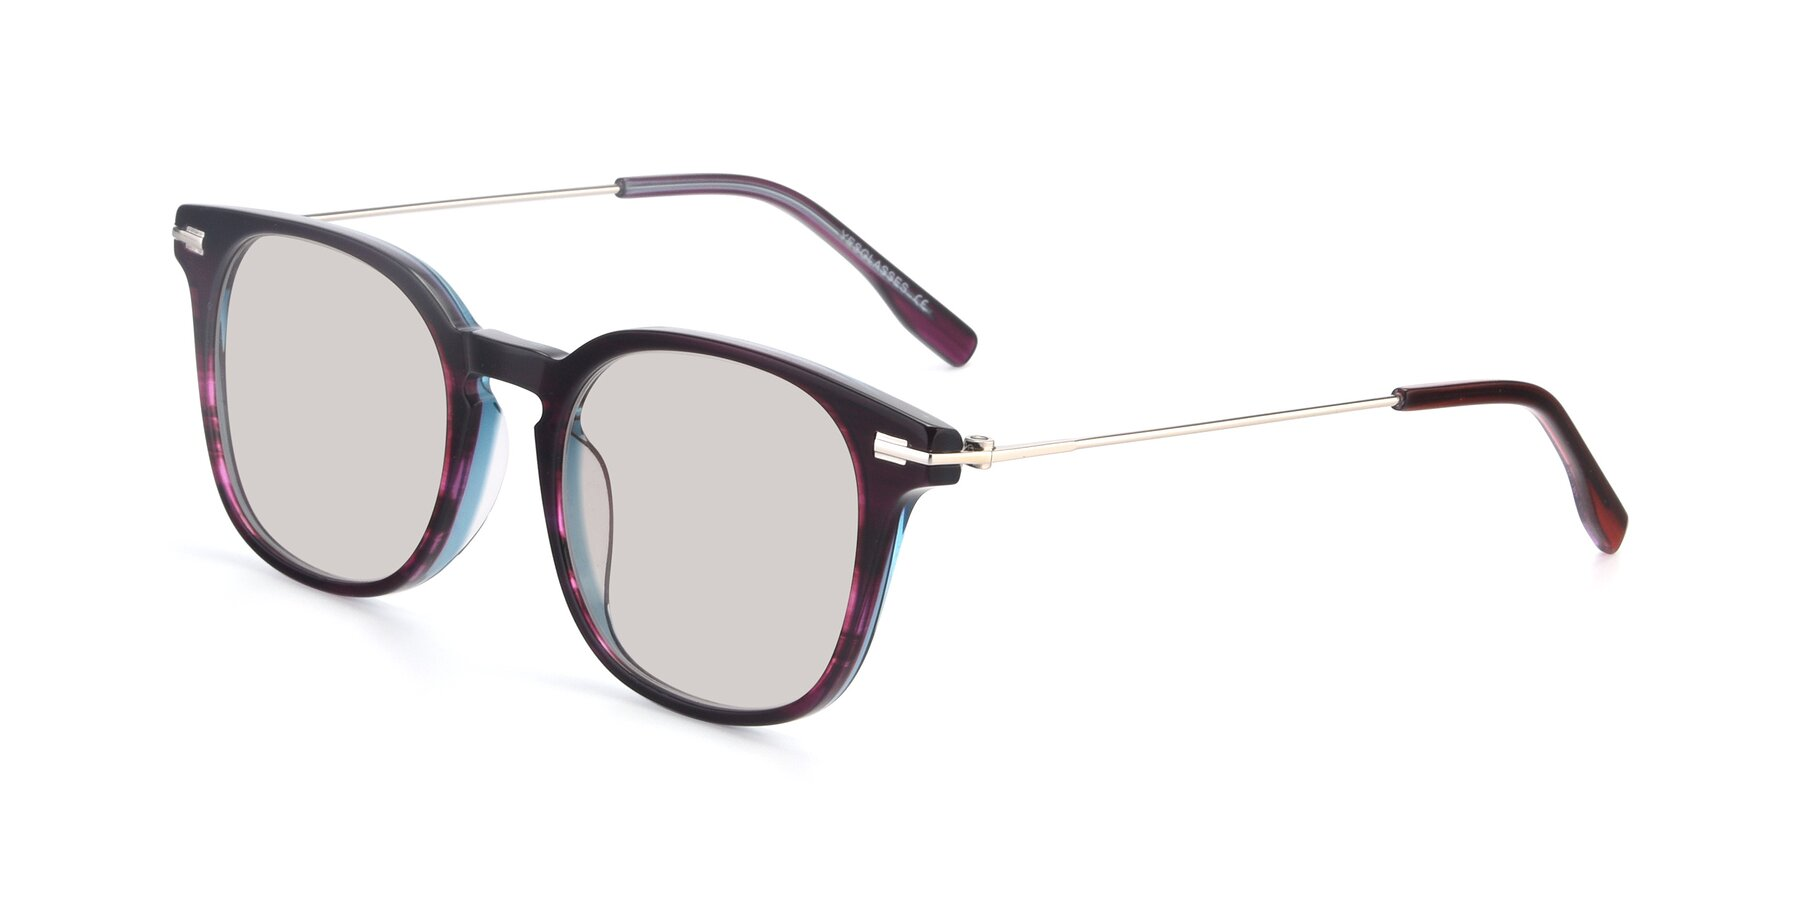 Angle of 17711 in Dark Purple with Light Brown Tinted Lenses